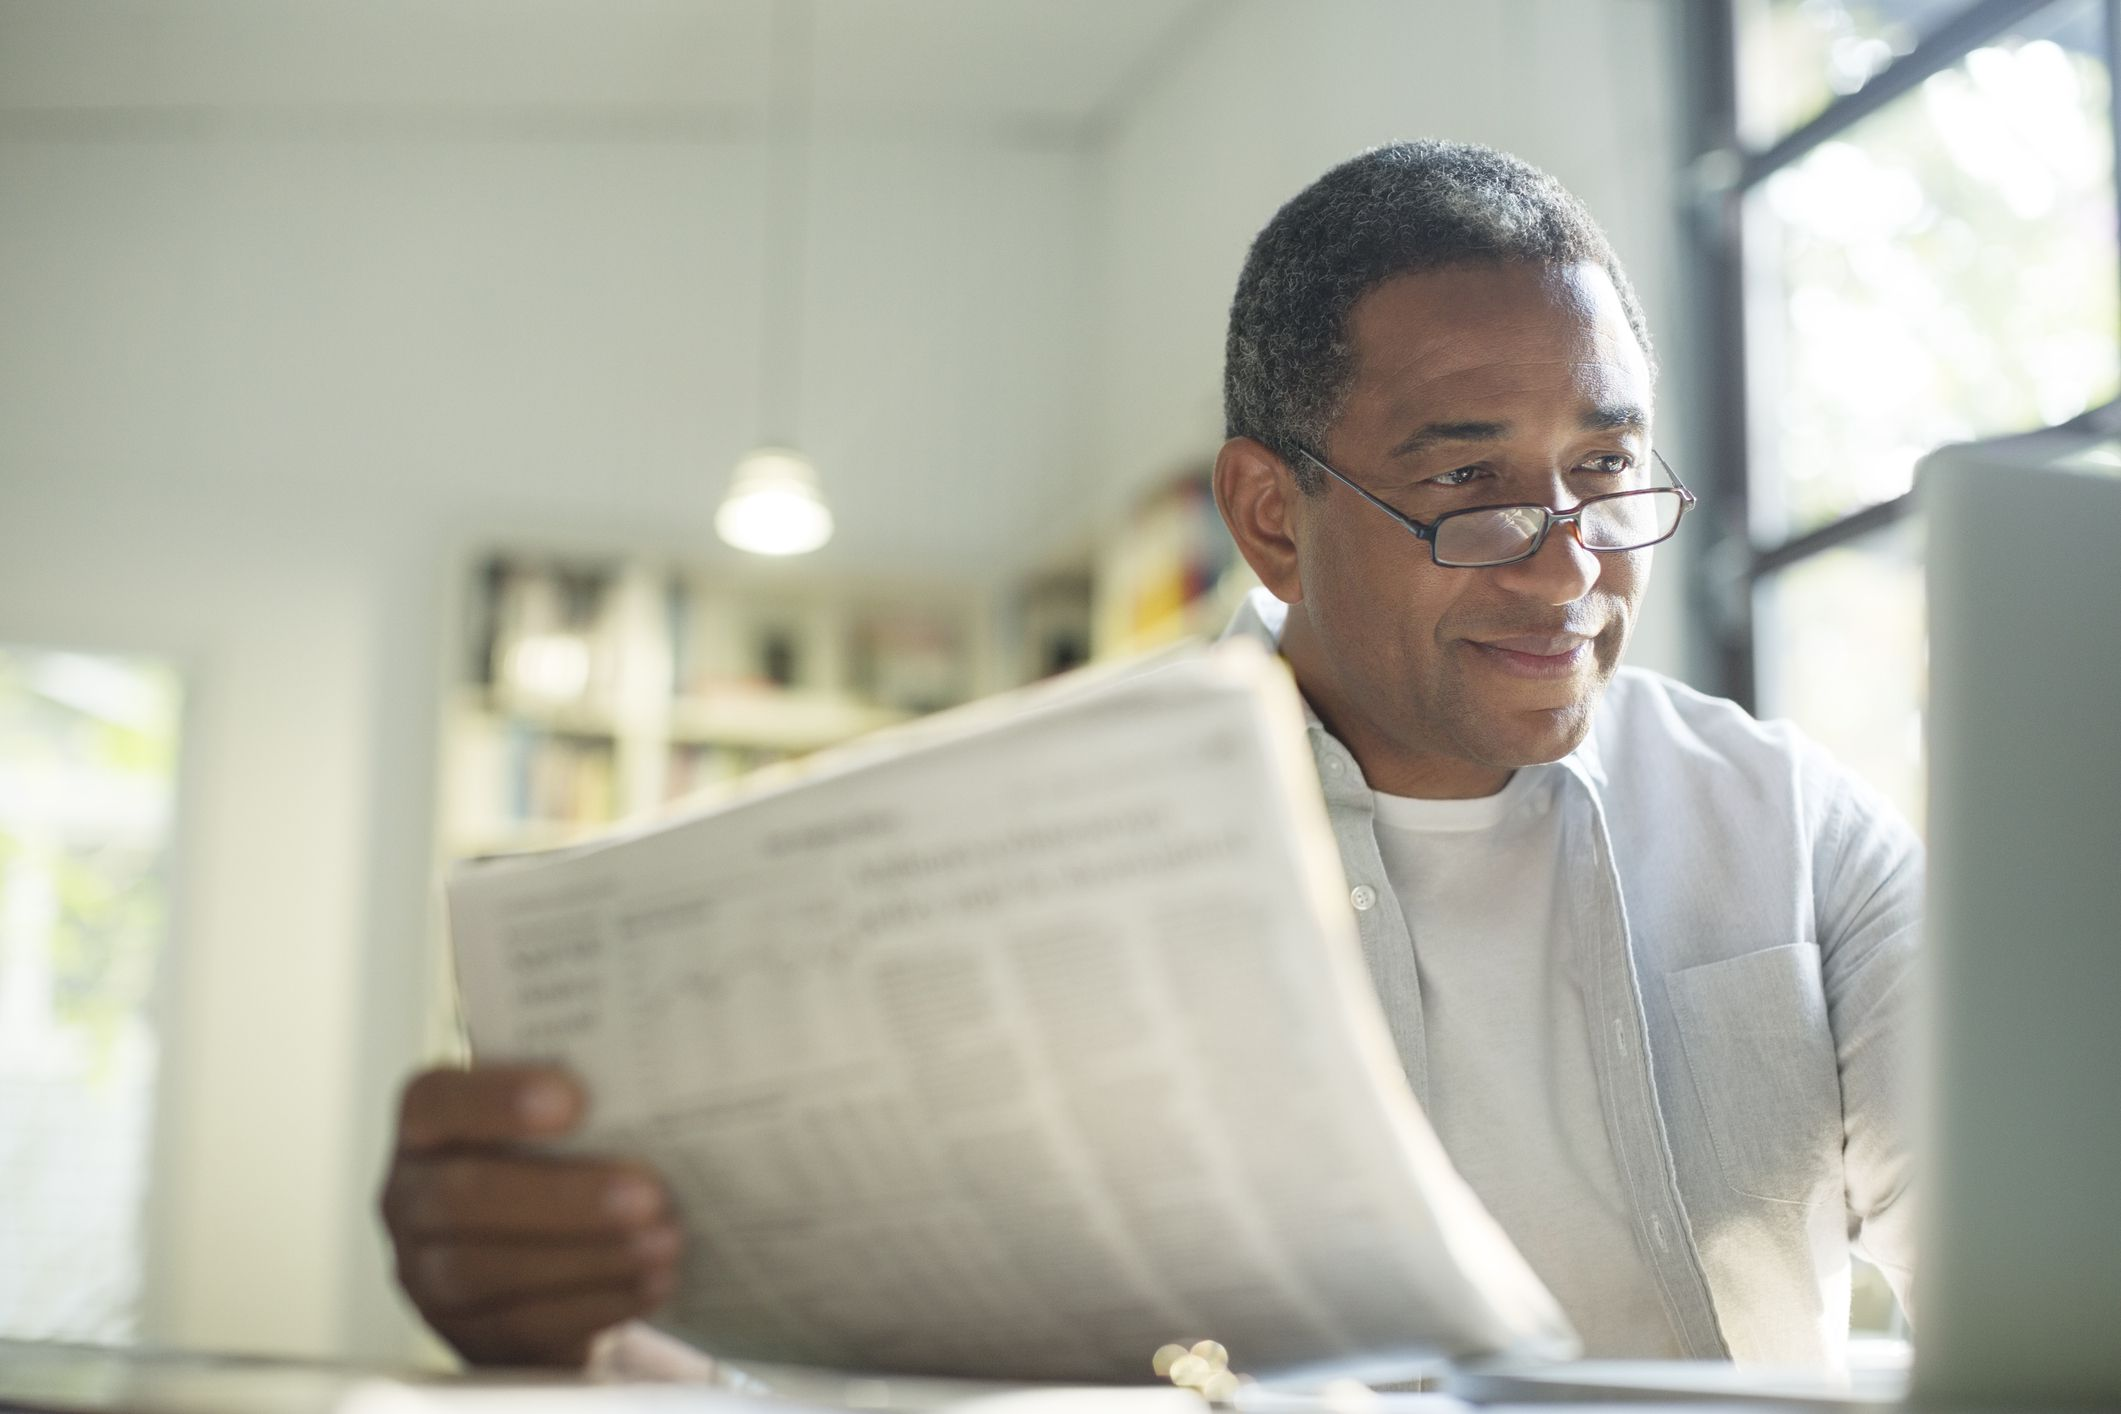 Learn About Social Security Income Limits If You Want to Keep Working